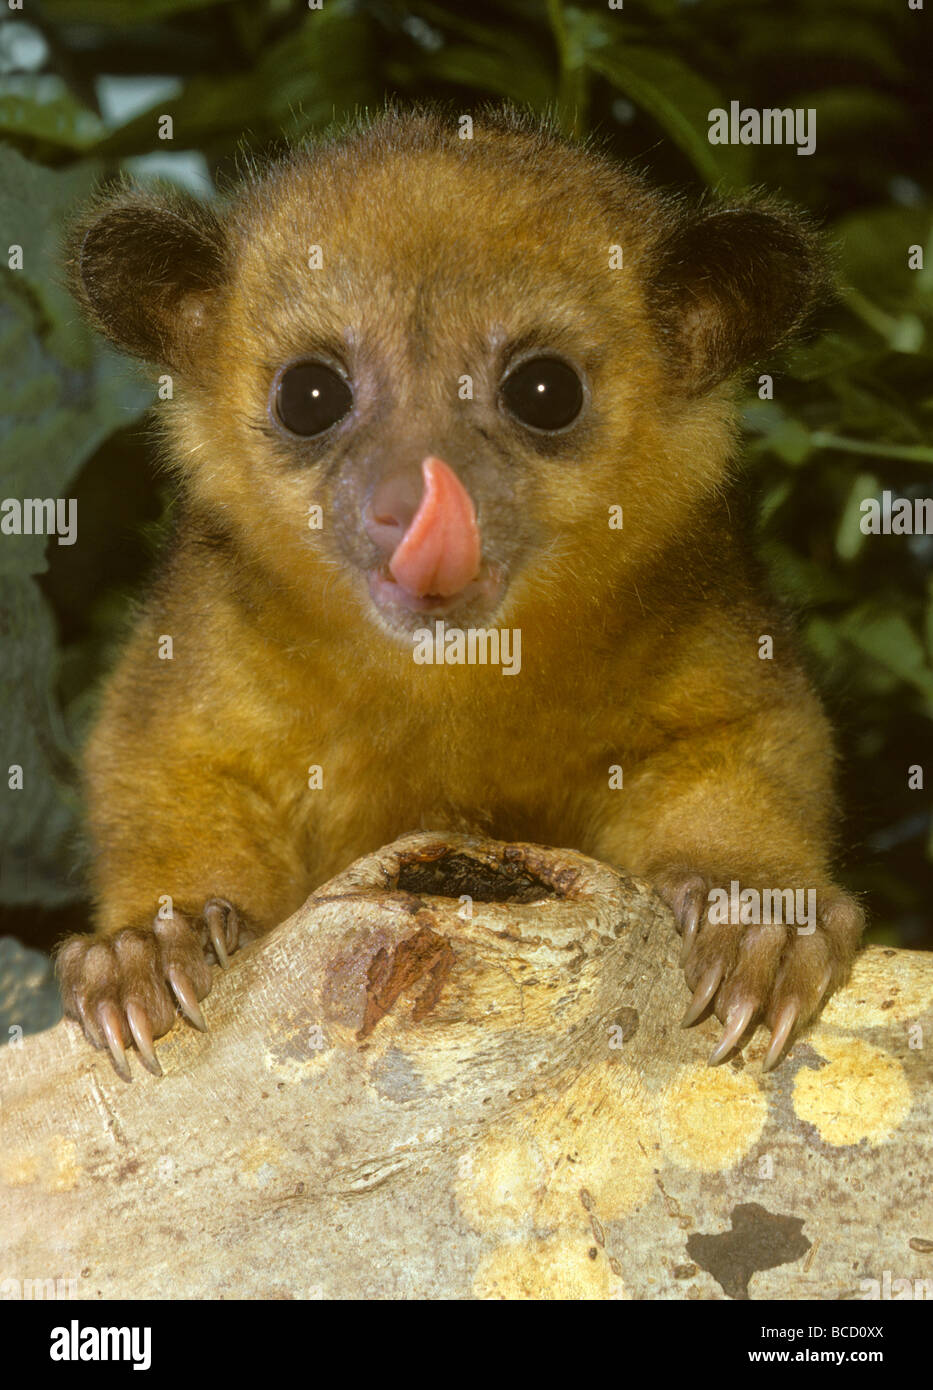 KINKAJOU (Potos flavus) young licking nose aka Honey Bear or Cat Monkey. Found in tropical Central and South America. - Stock Image